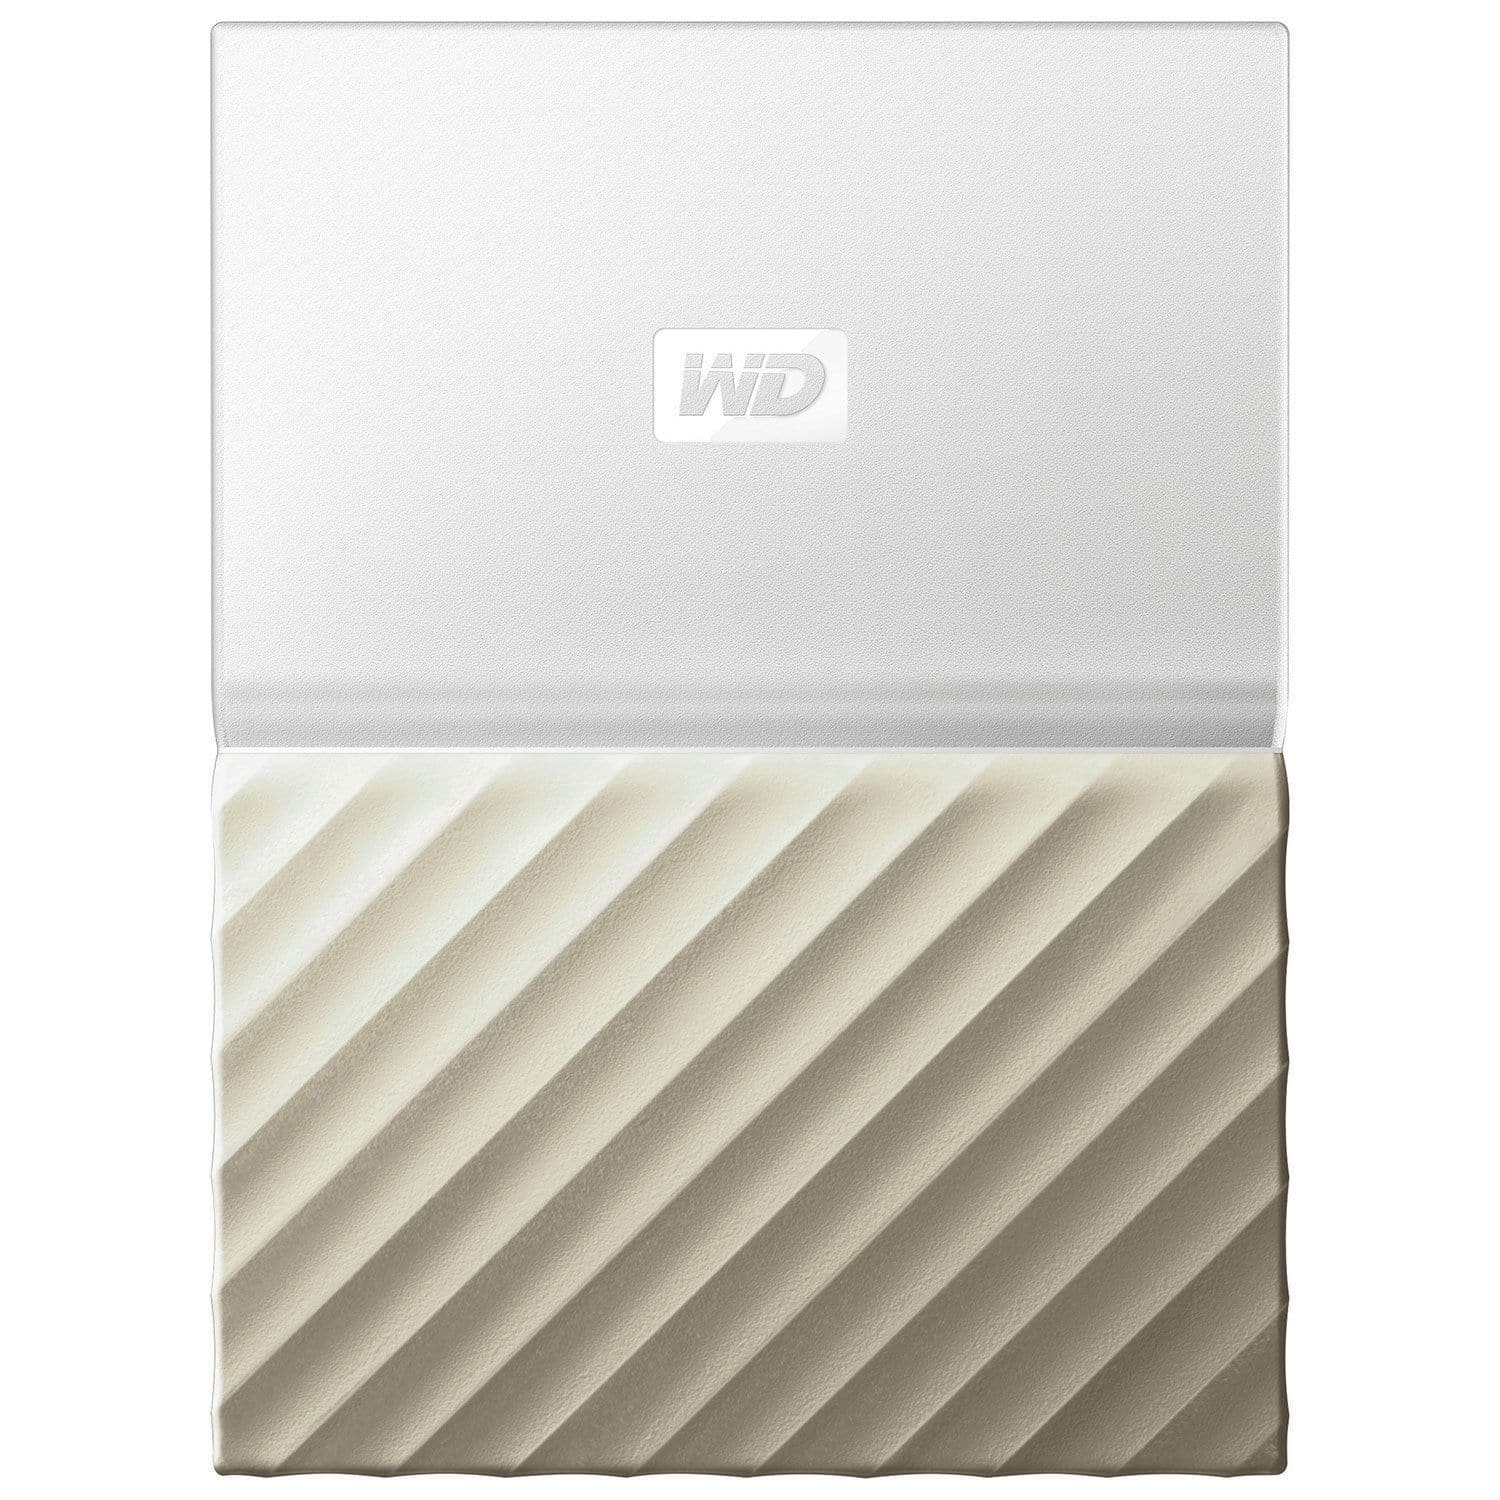 WD My Passport Ultra 2TB USB 3.0 Portable External Hard Drive  - White/Gold